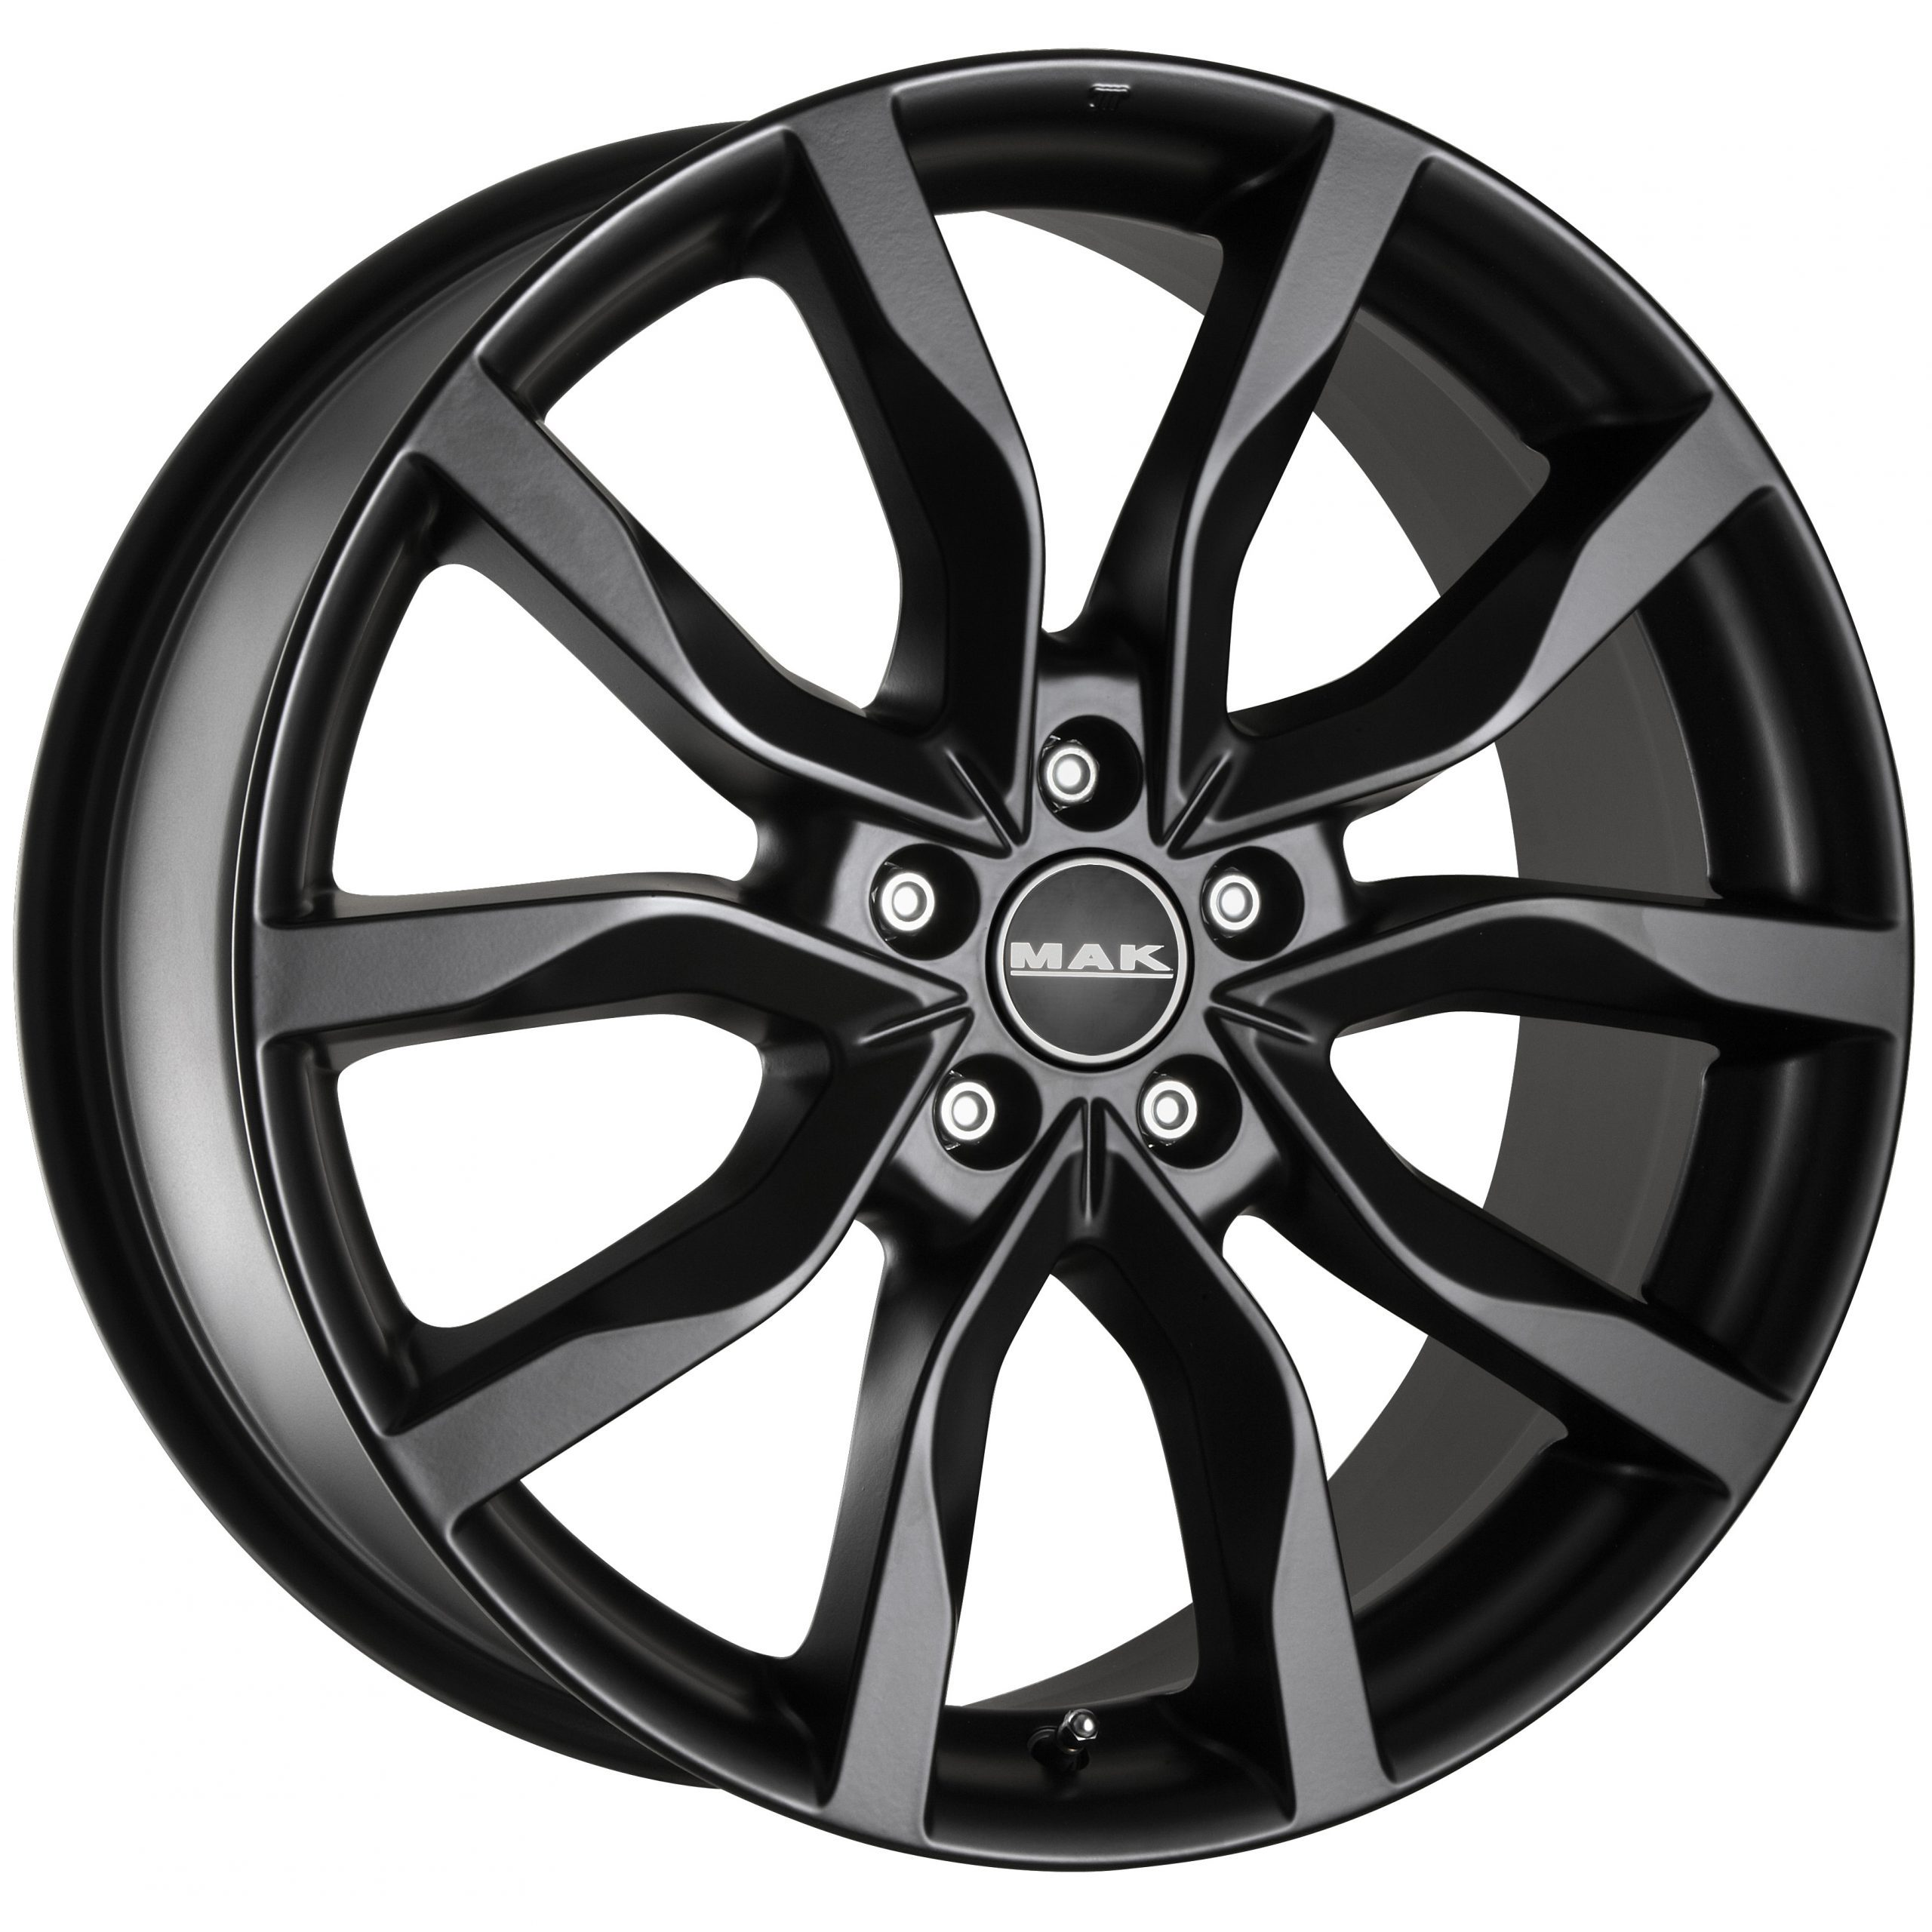 Mak Highlands Matt Black Wheelwright Alloy Wheels Steel Wheels Tyres Tpms Wholesale